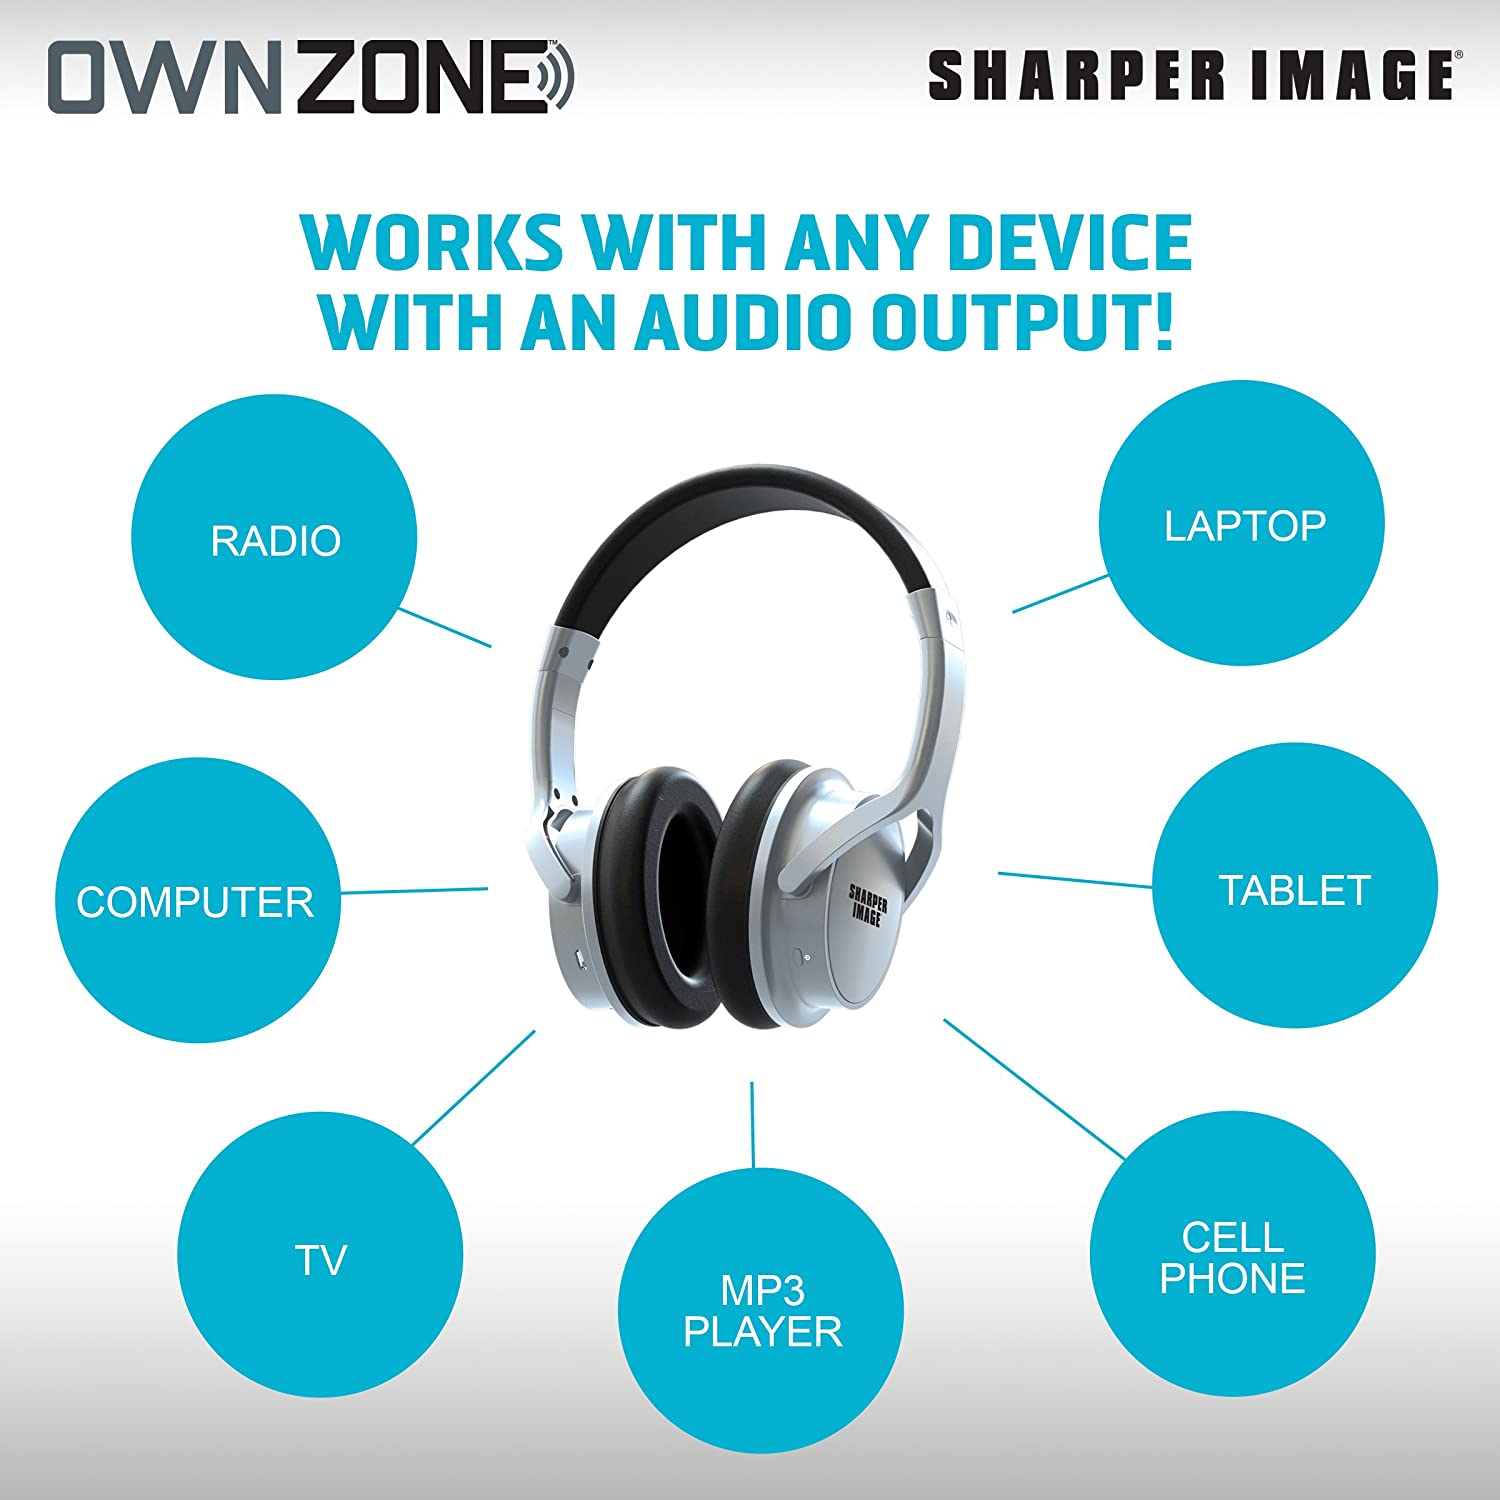 Amazon.com: Sharper Image OWN ZONE Wireless Rechargeable TV ...